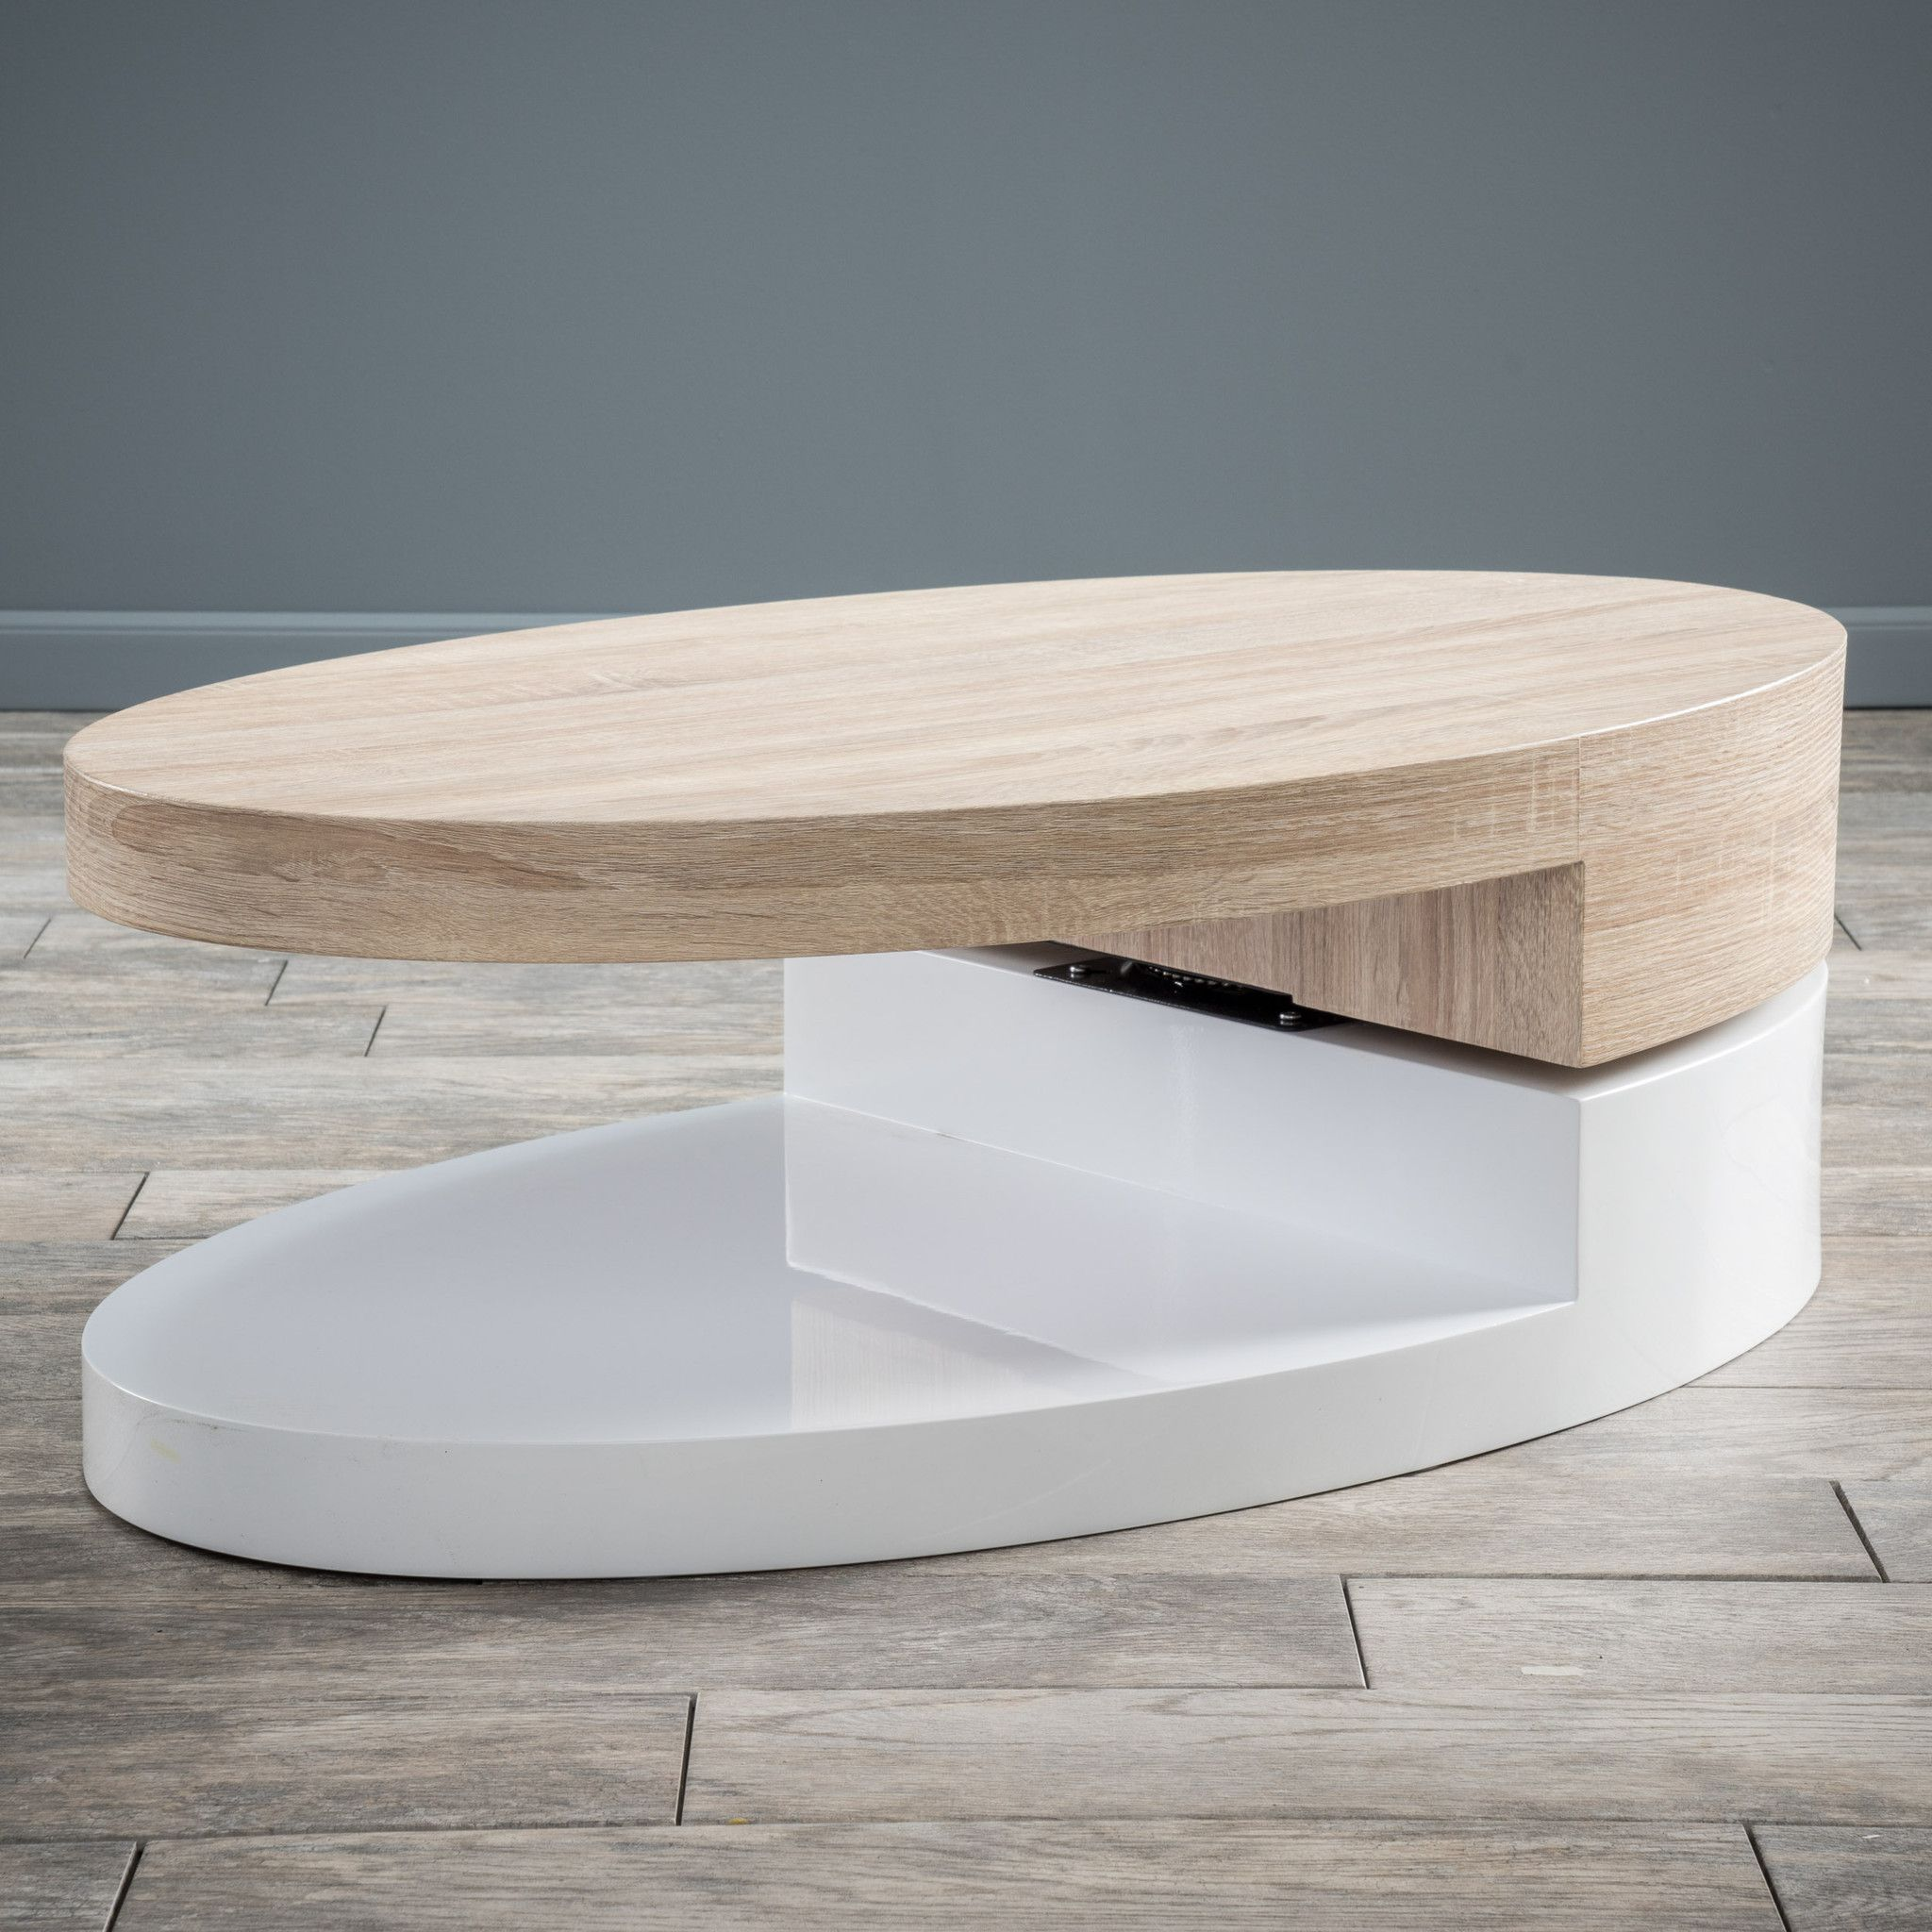 Emerson large oval mod swivel coffee table the emerson large oval emerson large oval mod swivel coffee table the emerson large oval mod swivel coffee table is geotapseo Image collections